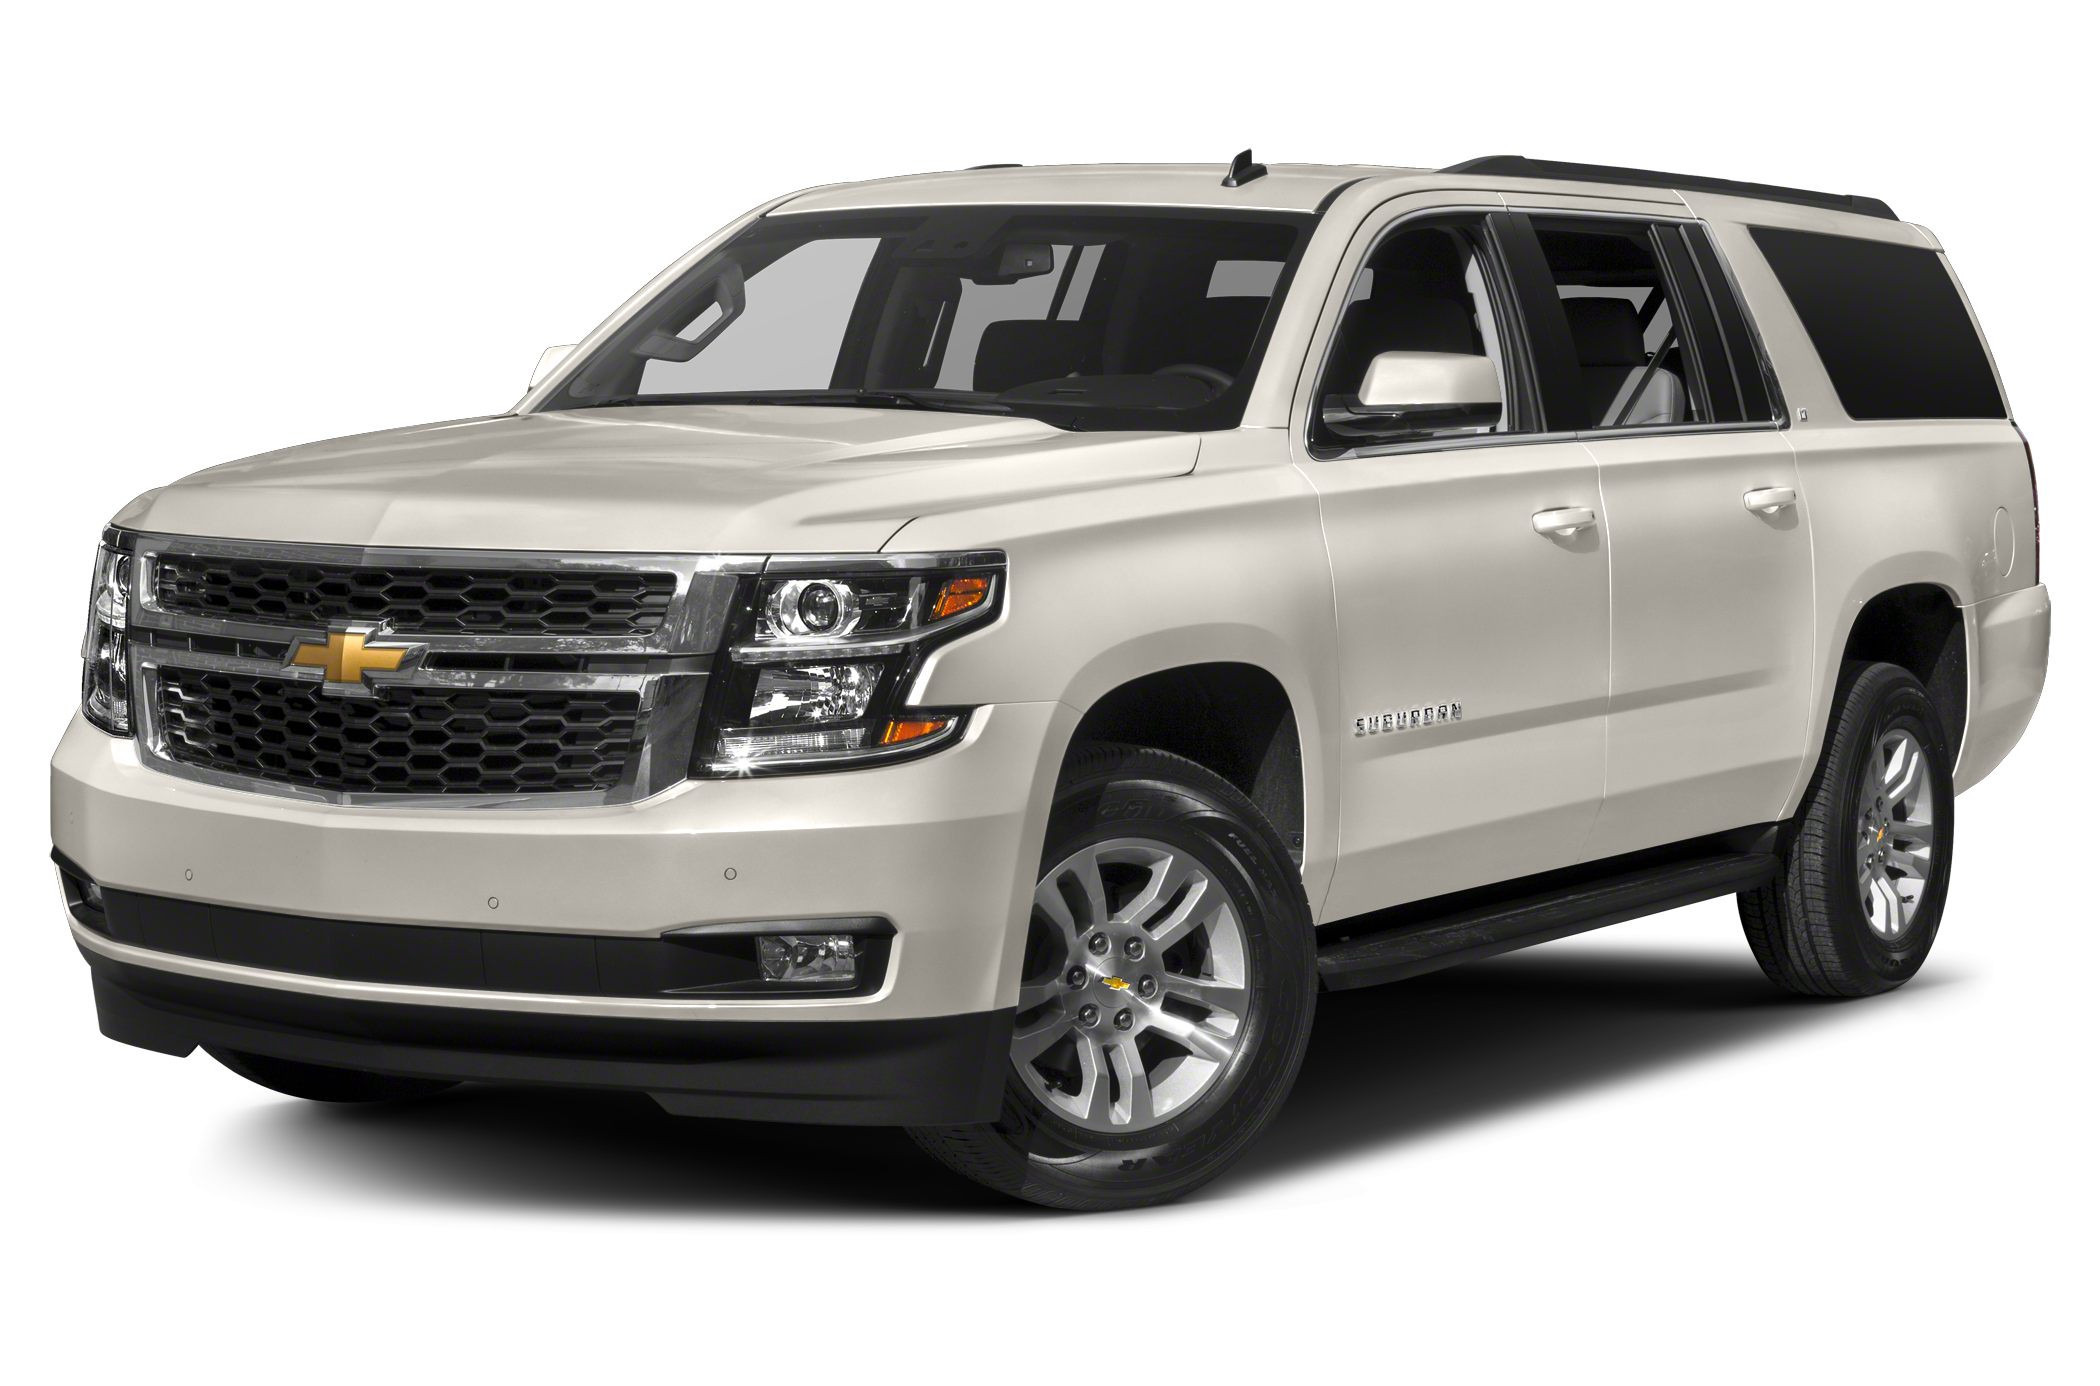 2019 Chevrolet Suburban 2019 Chevrolet Suburban Ls 4x2 Pricing and Options